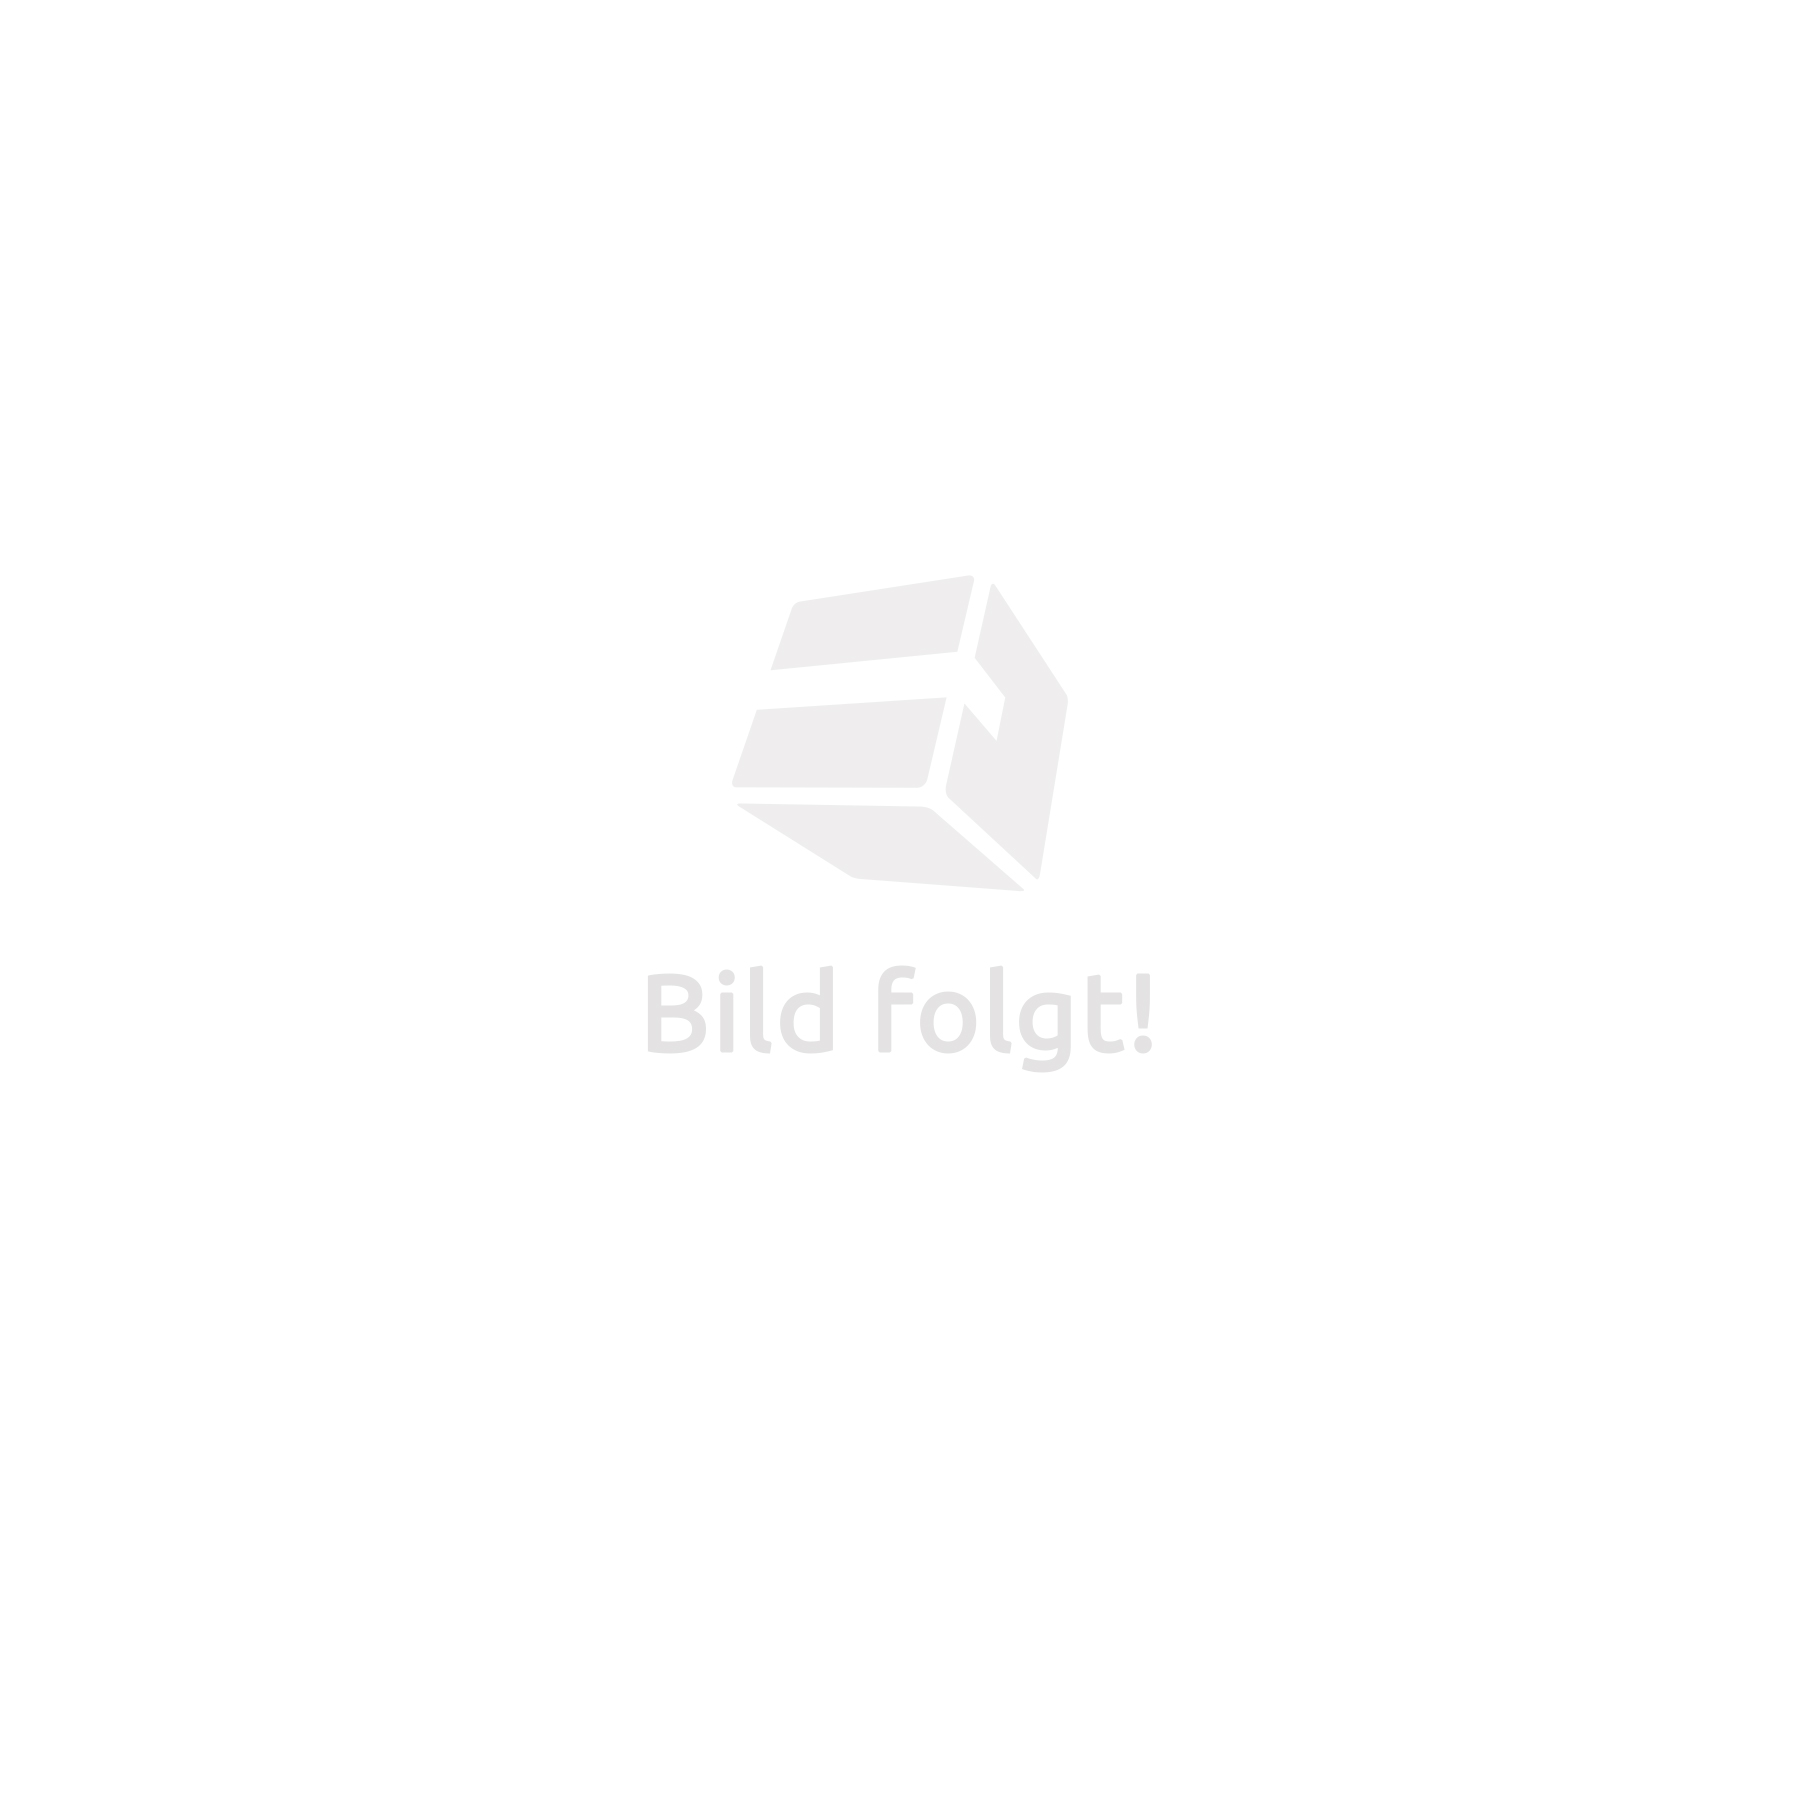 Set de 4 Valises Trolley - ABS - 4 Roues Pivotantes à 360°